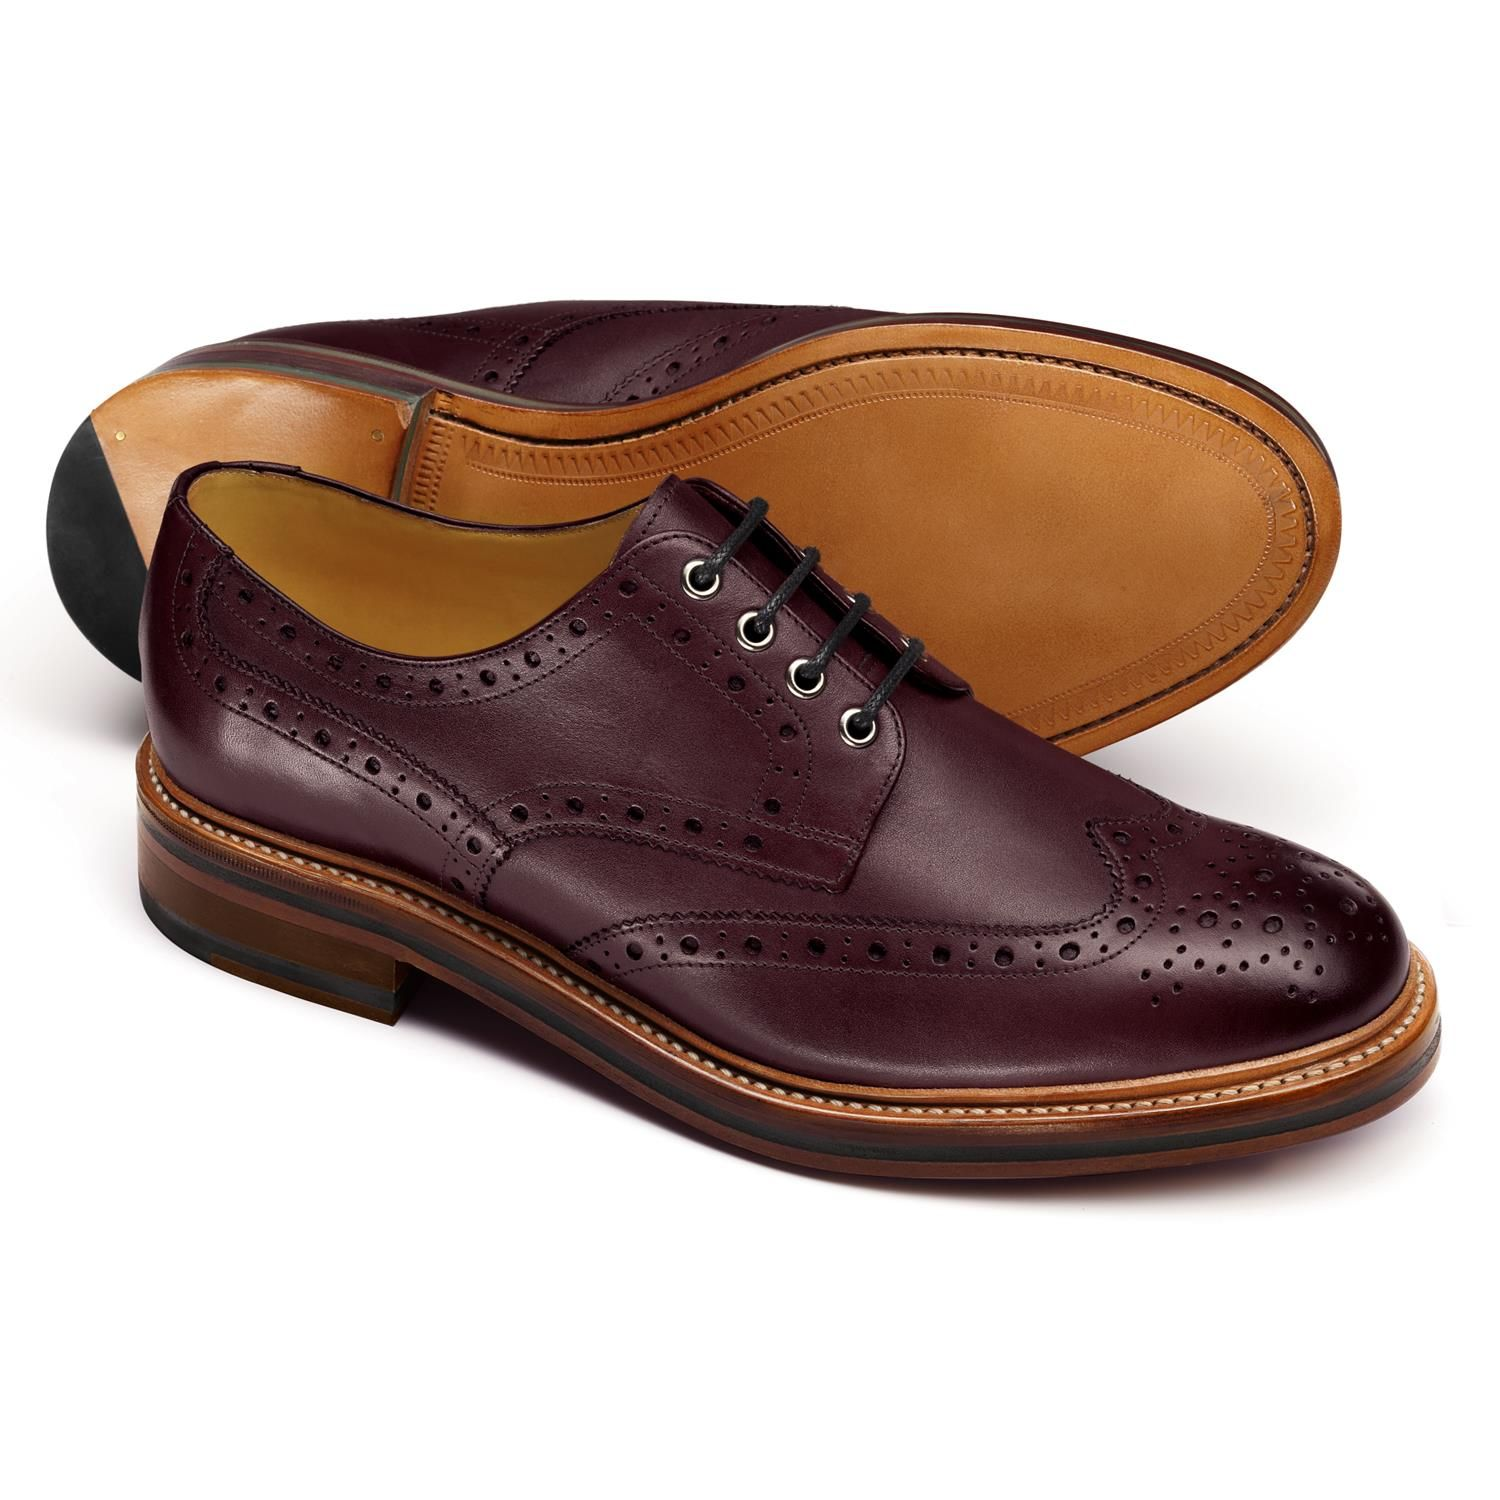 Brown Charles Stone Wingtip Oxfords Full Brogue Men/'s Dress Leather Shoes